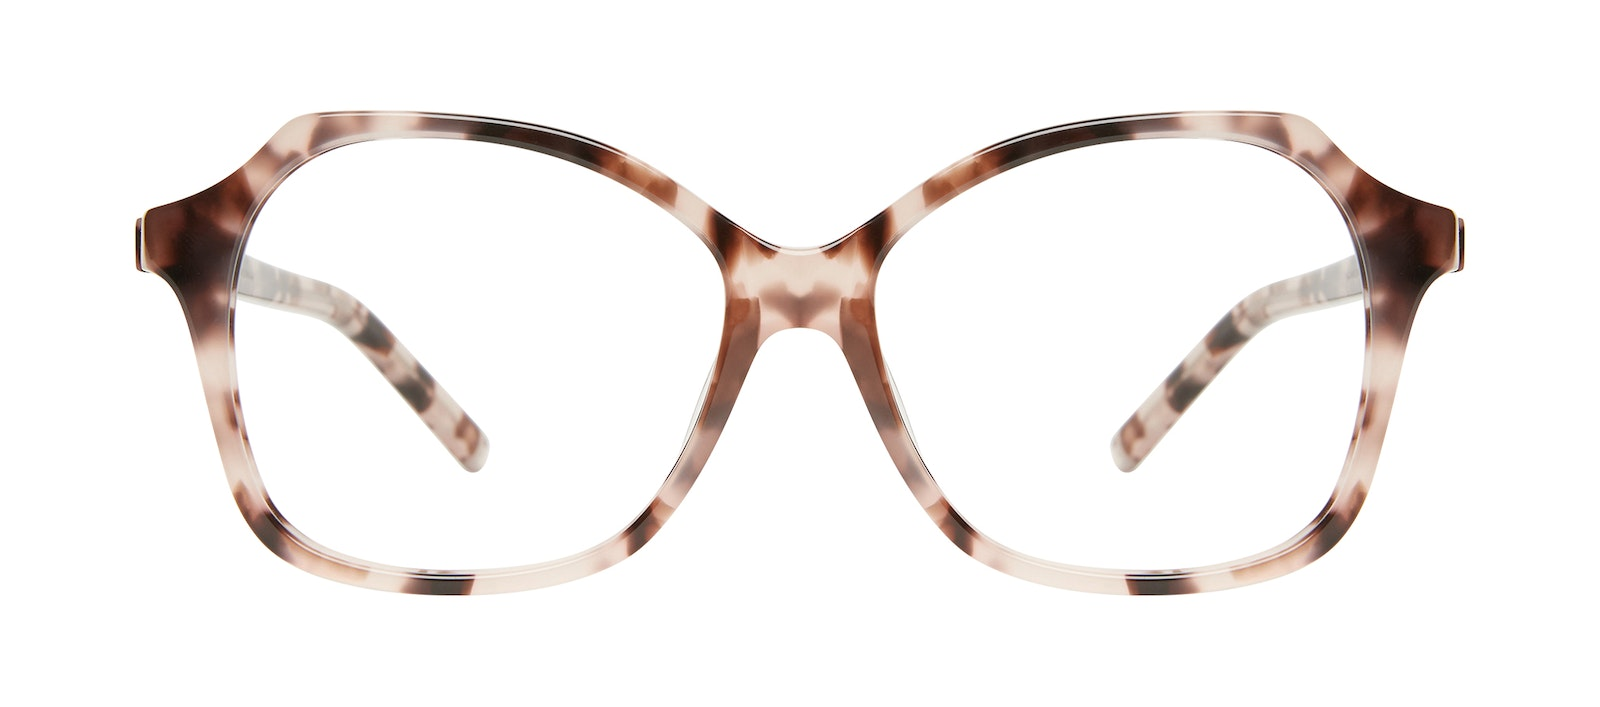 Affordable Fashion Glasses Square Eyeglasses Women Outlook Marbled Pink Front